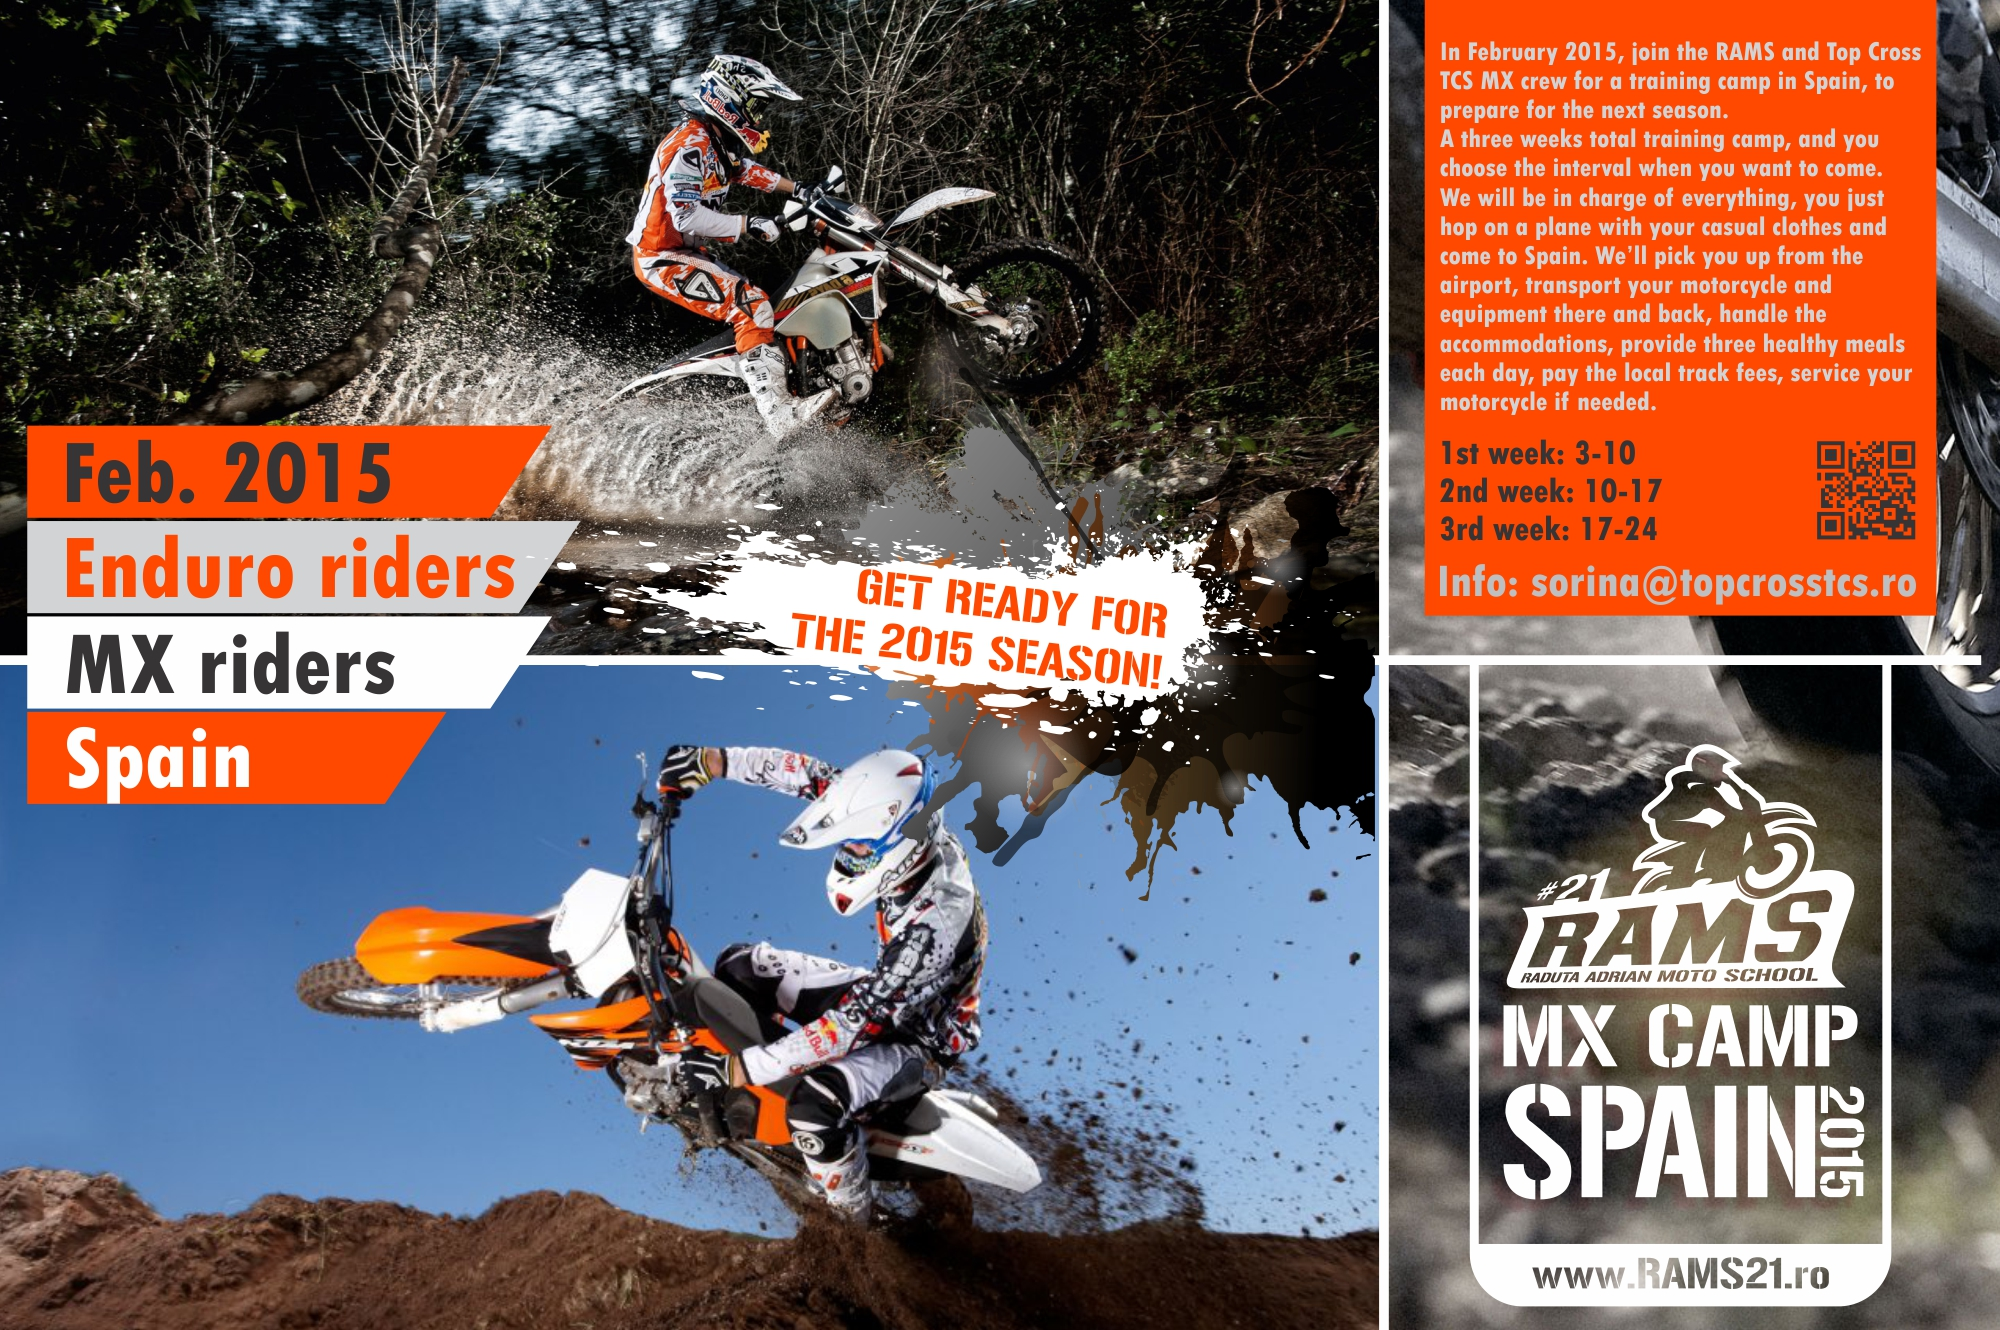 rams mx camp spain